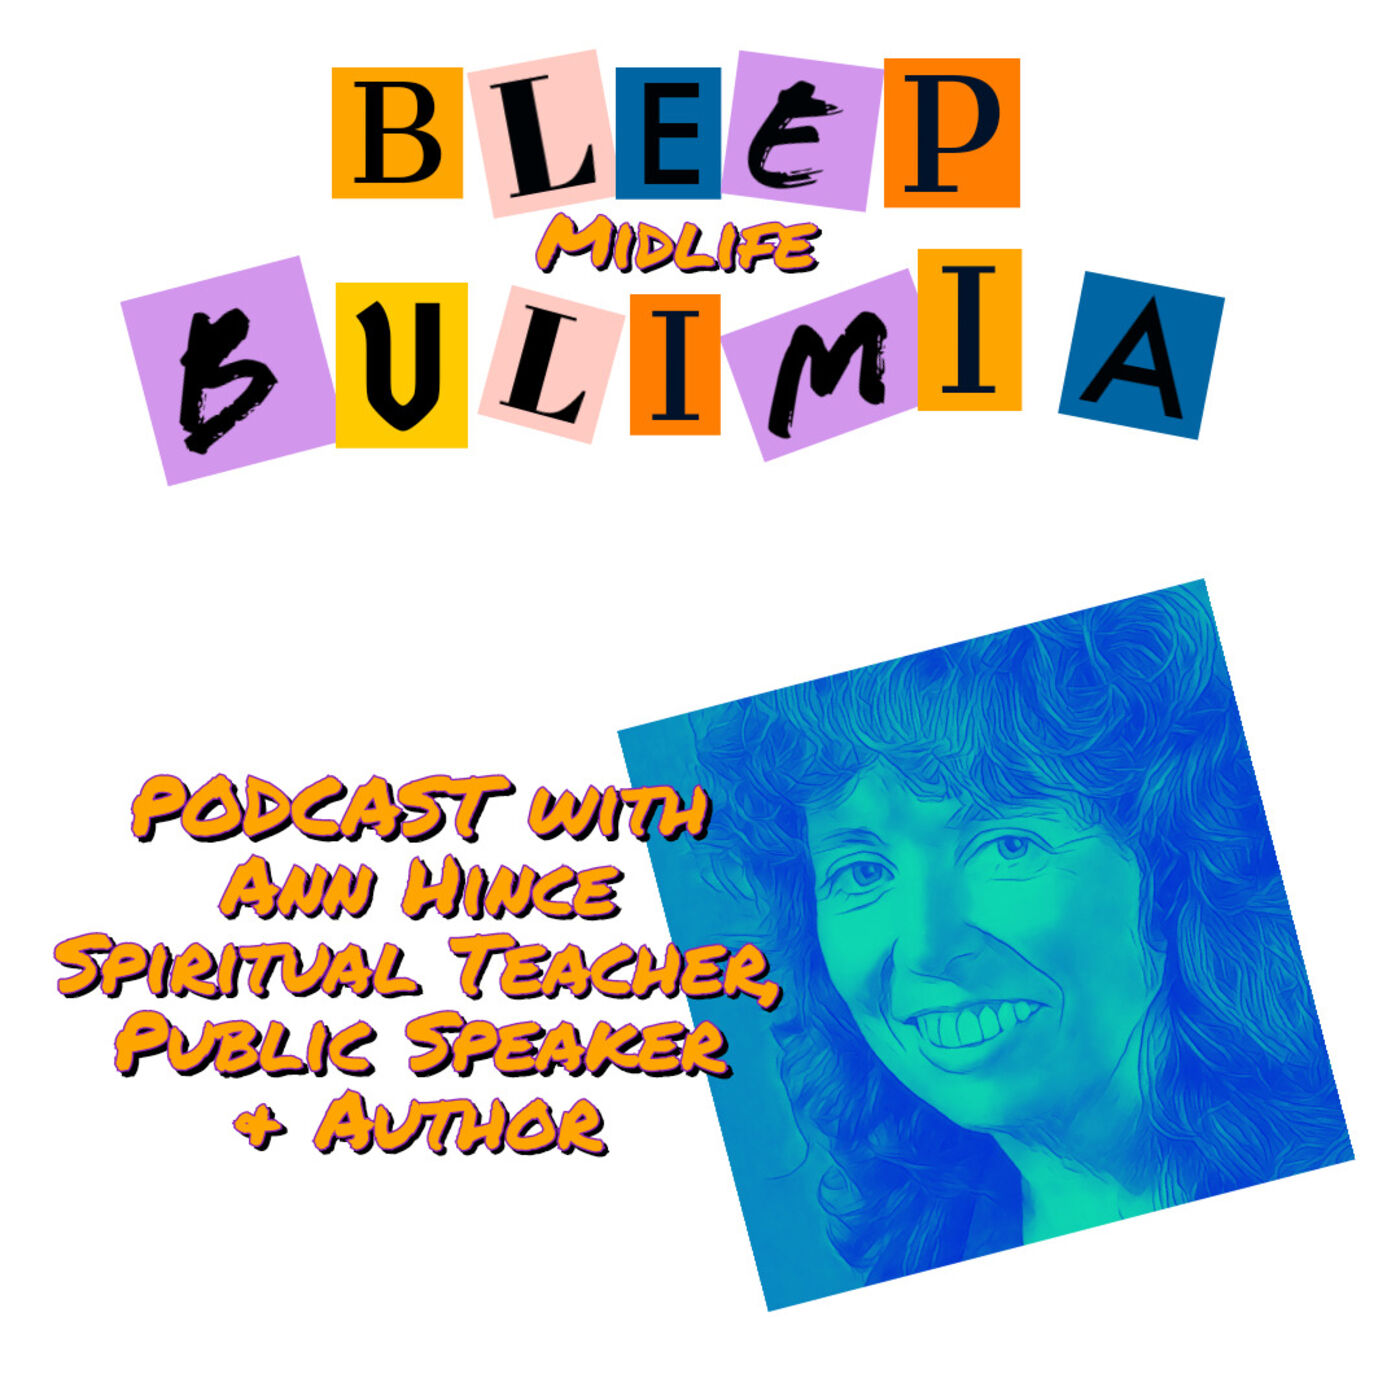 Bleep Bulimia Episode 47 with Ann Hince Spiritual Teacher, Public Speaker and Author About In-Sight Into Emotions & Feeling Them